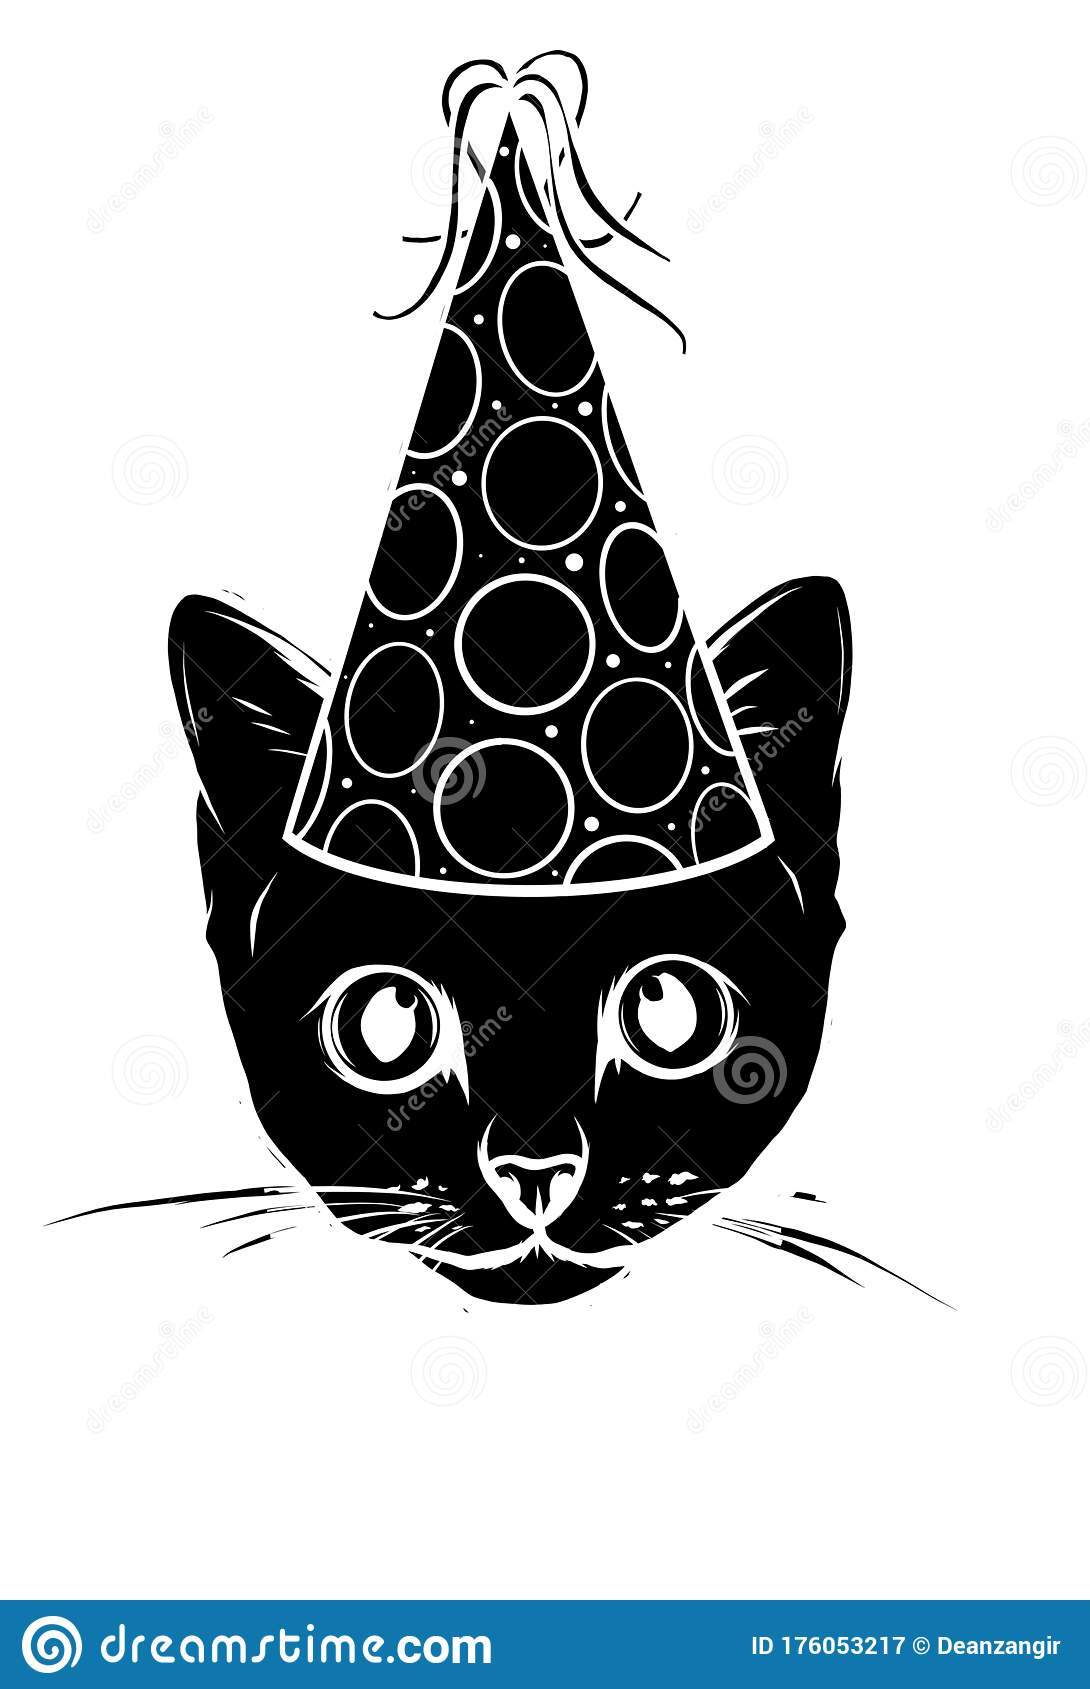 Get Cartoon Party Hat And Confetti Gif